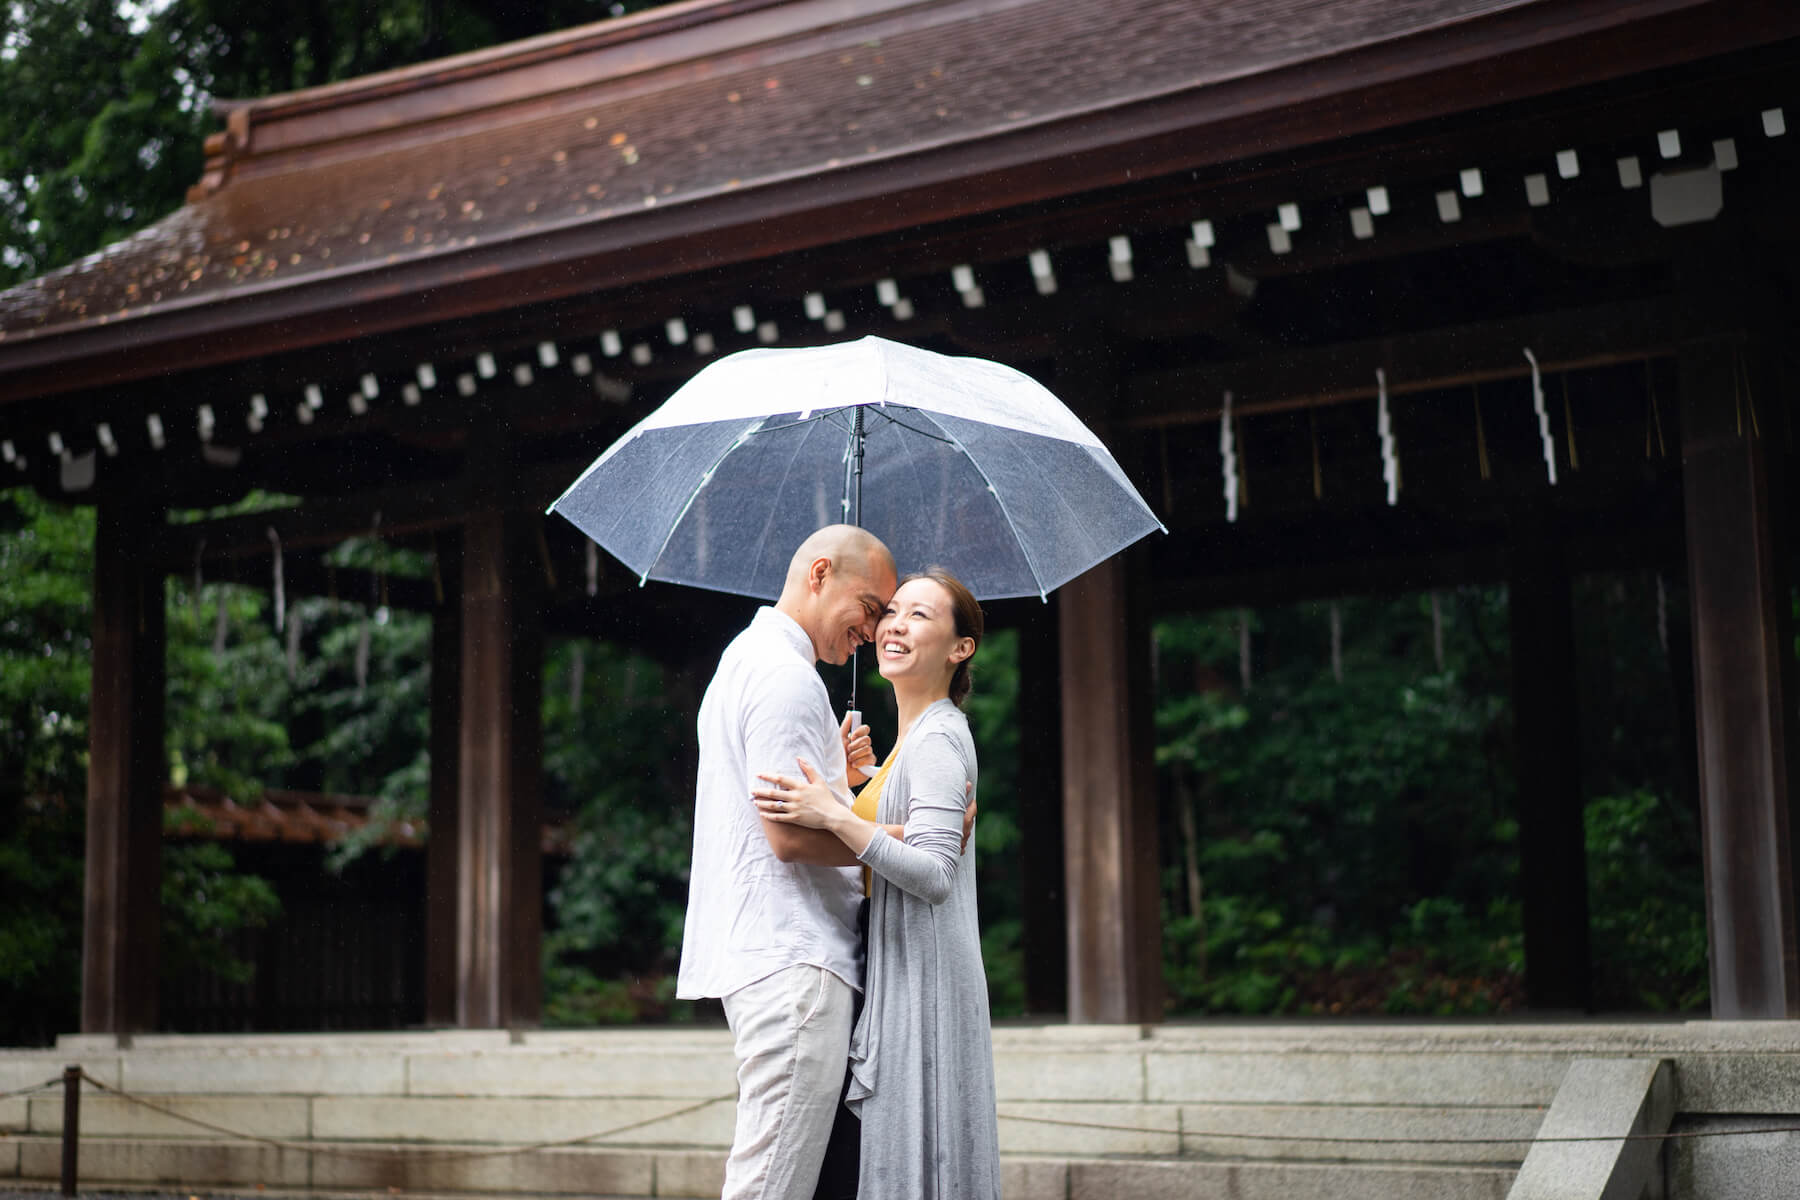 Couple embracing in the rain in front of temple, Tokyo Japan